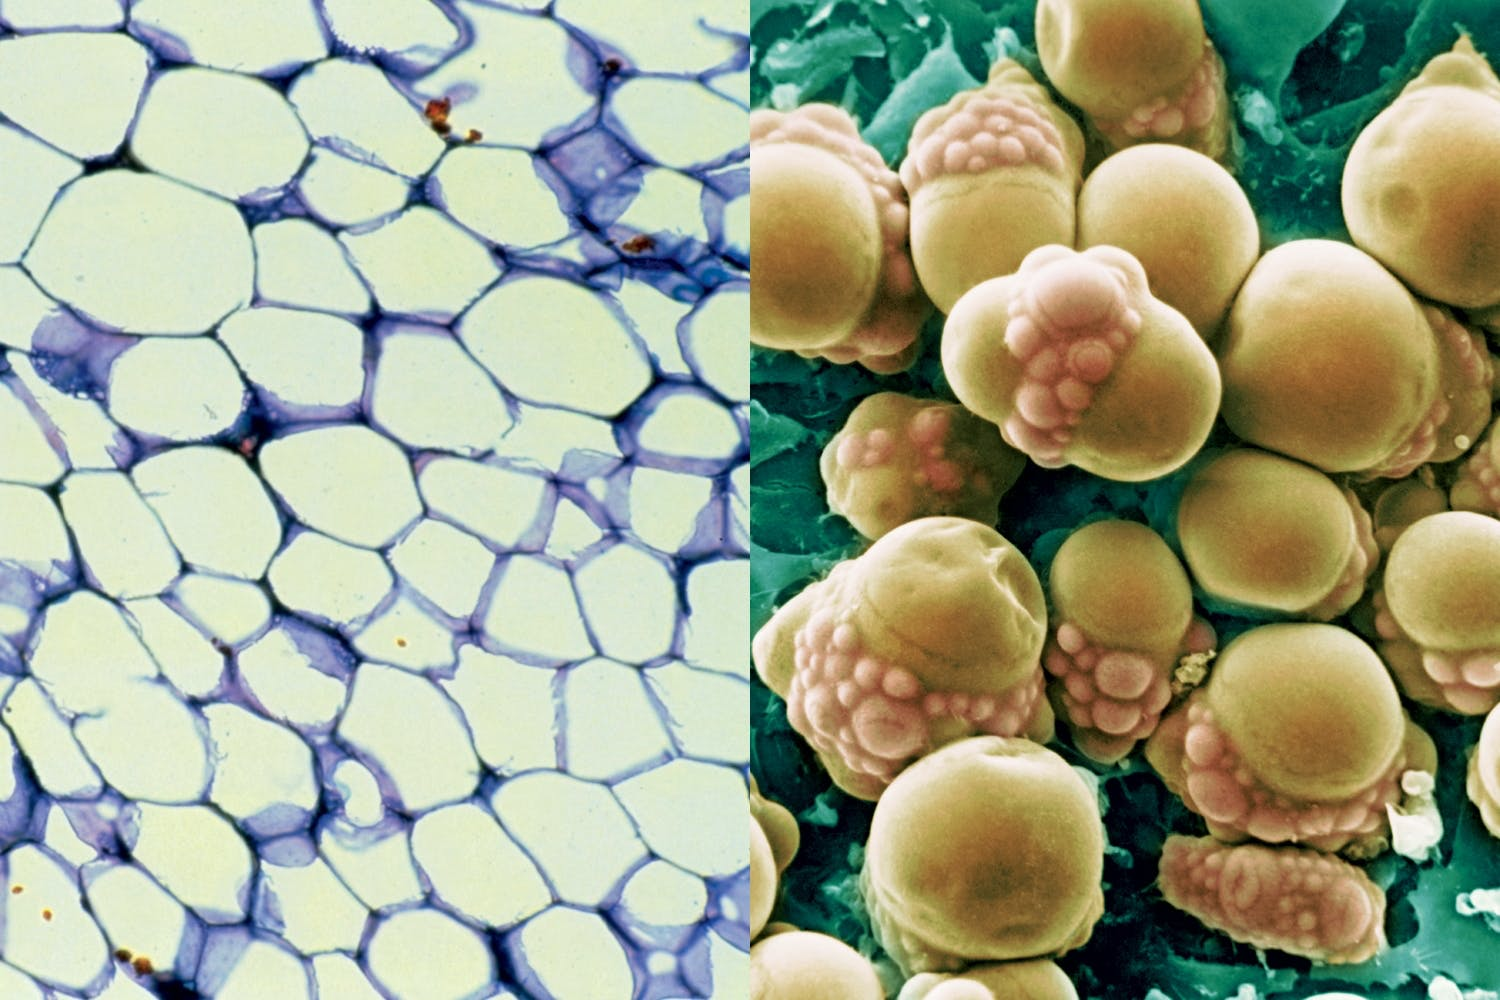 white and brown fat cells